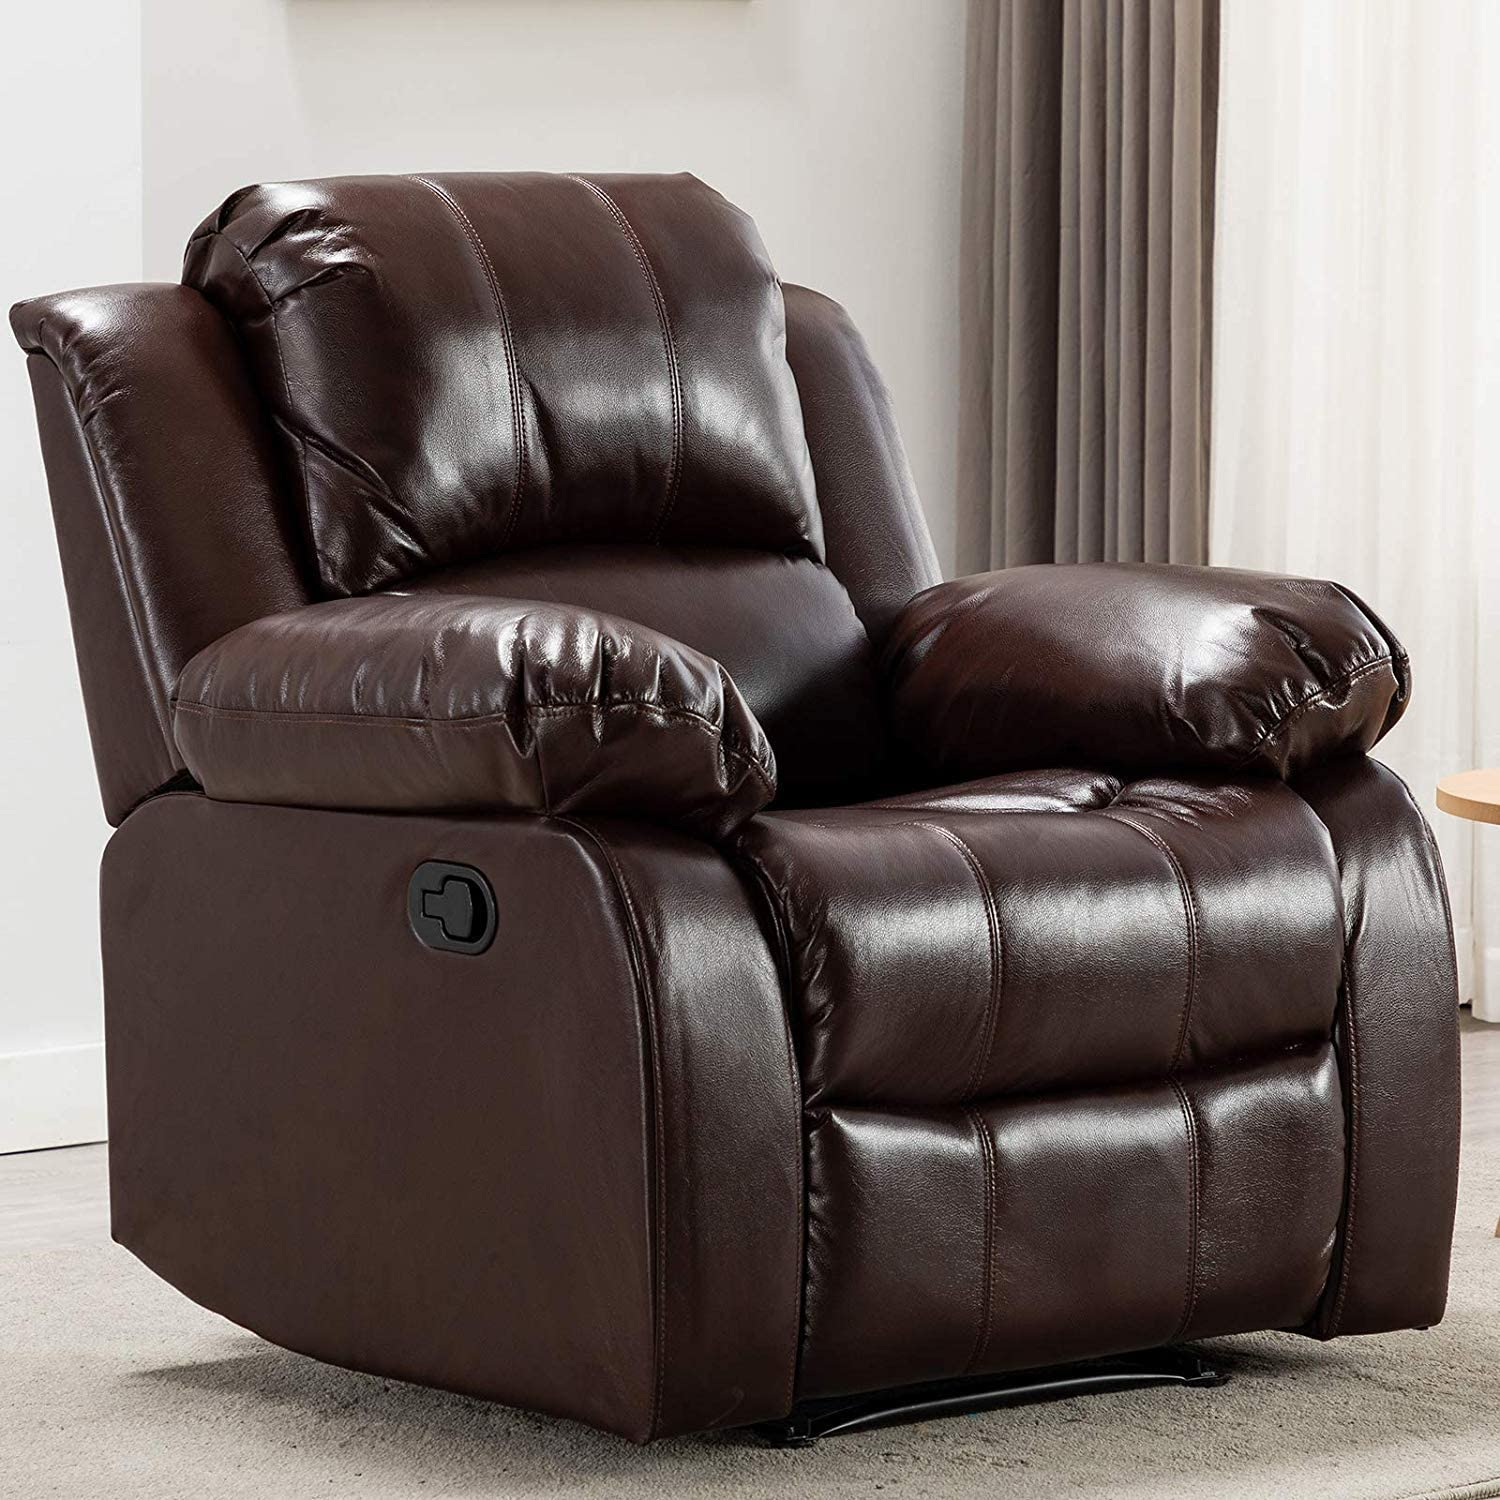 ANJ Recliner Chair Overstuffed Heavy Duty Recliner, Soft Faux Leather Home Theater Seating Manual Single Sofa (Brown)